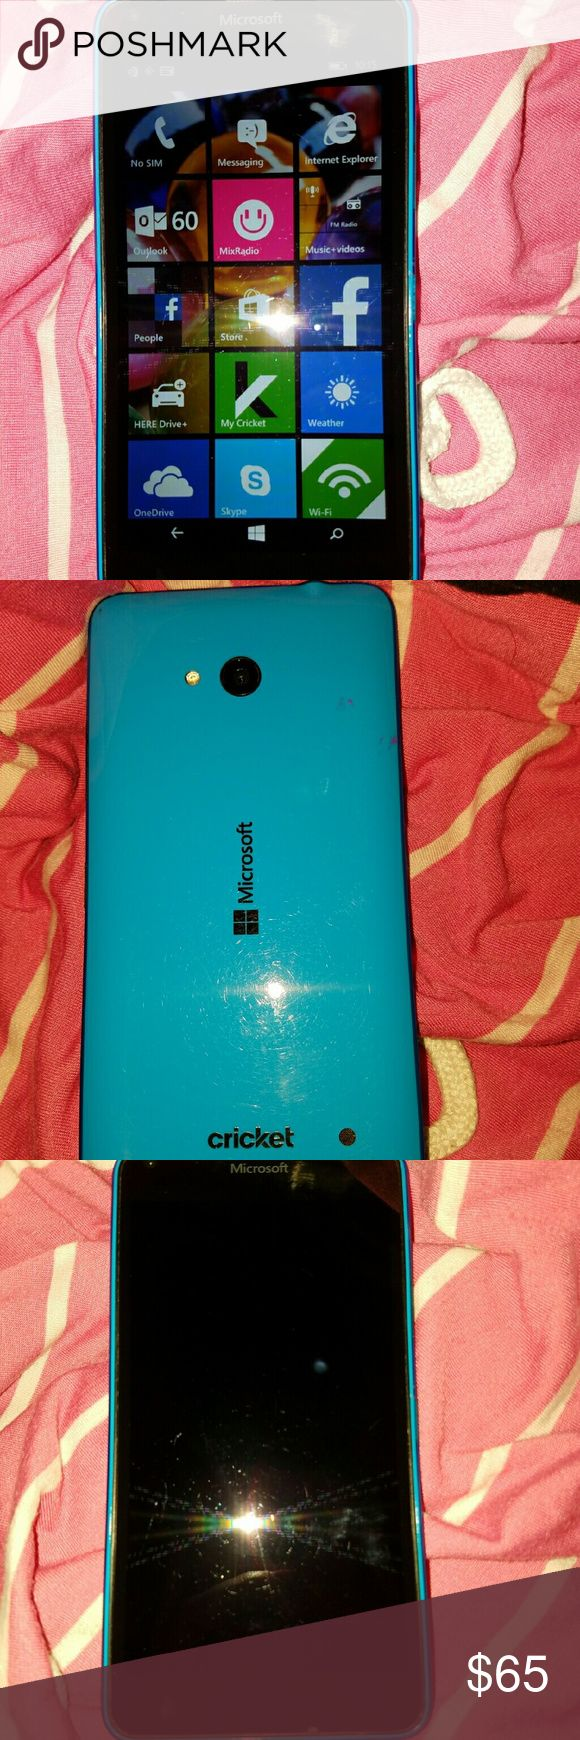 MICROSOFT LUMIA 640- 4G LTE- BABY BLUE- Micro sim MICROSOFT LUMIA 640/4G/LTE_ COLOR IS BABY BLUE_ RUNS ON WINDOWS 8.1 SOFTWARE_ CRICKET_ PHONE IS NEW WITHOUT BOX_ IT HAS *NEVER* HAD ANY PHONE LINE HOOKED UP ON IT_ THIS PHONE TAKES AWESOME PICTURES!! AND IT'S SUPER CUTE & VERY STYLISH!! ((ALSO, THESE PHONE'S ARE BUILT TO LAST!! VERY DURABLE!!)) **MAKE ME AN OFFER!!* :):) Microsoft Windows Other